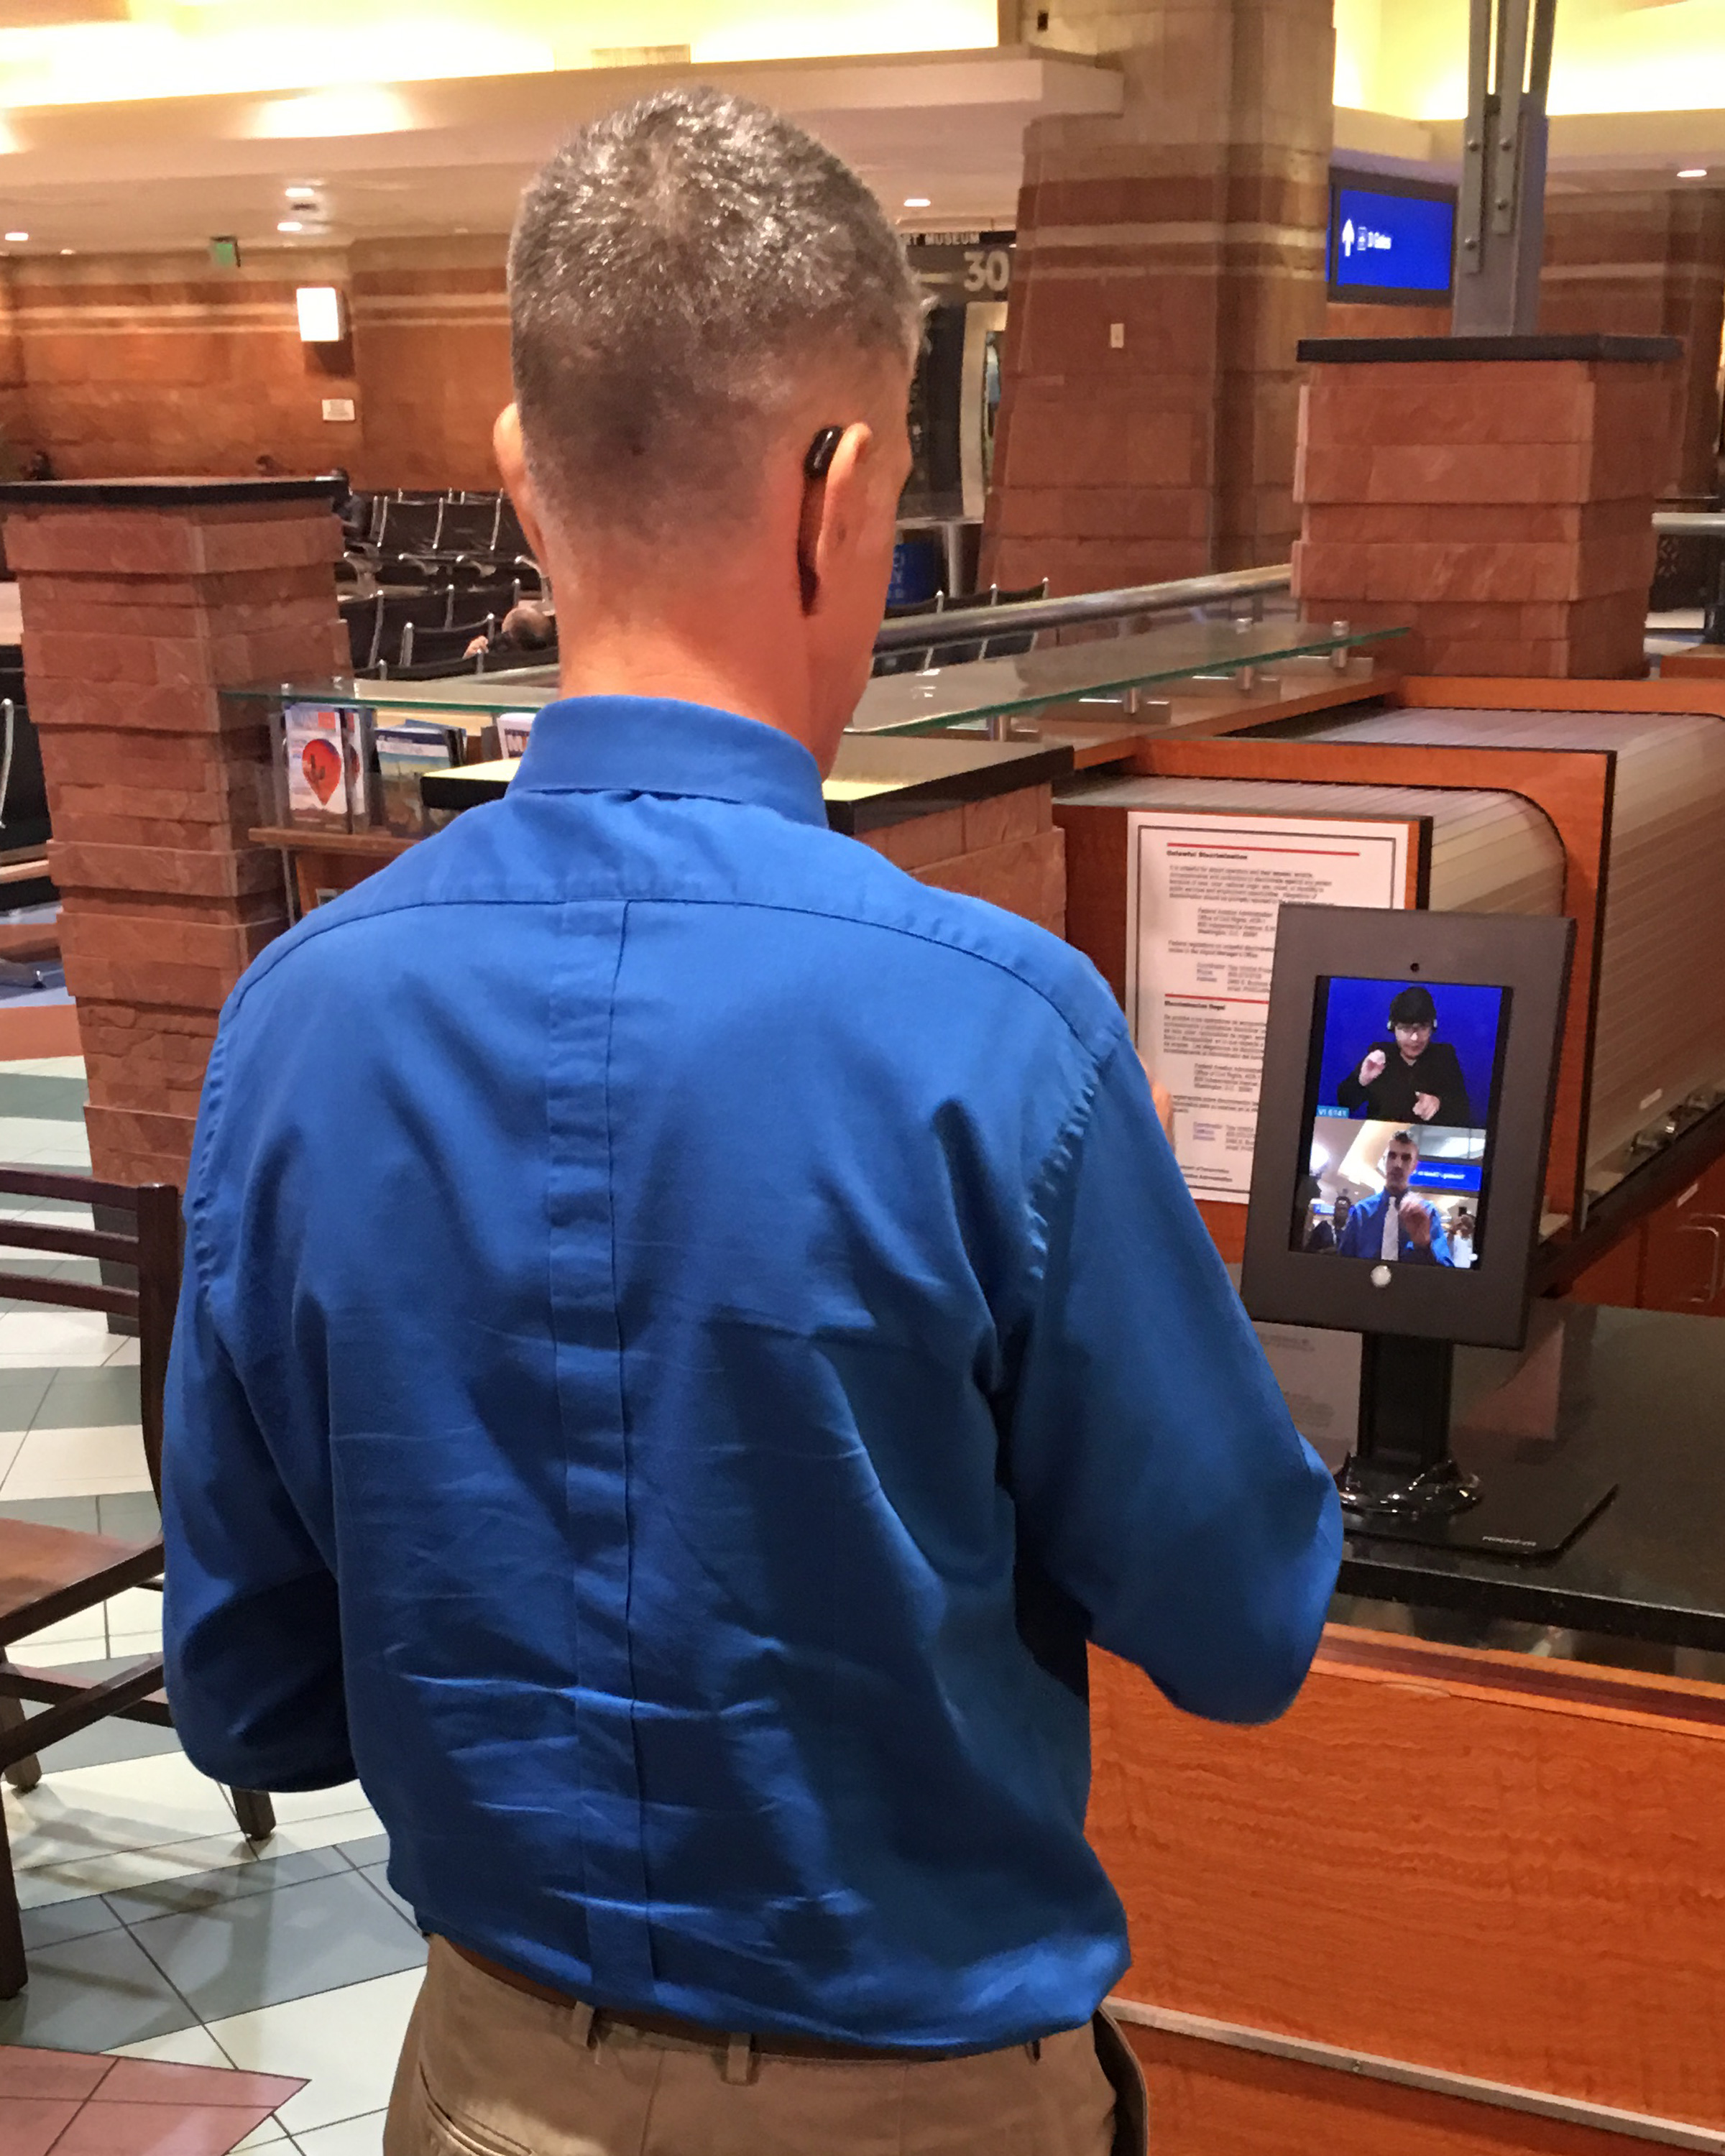 Phoenix Sky Harbor Adds Video Relay Service Vrs To Assist Deaf Terminal Transportation Hard Of Hearing And Speech Challenged Travelers